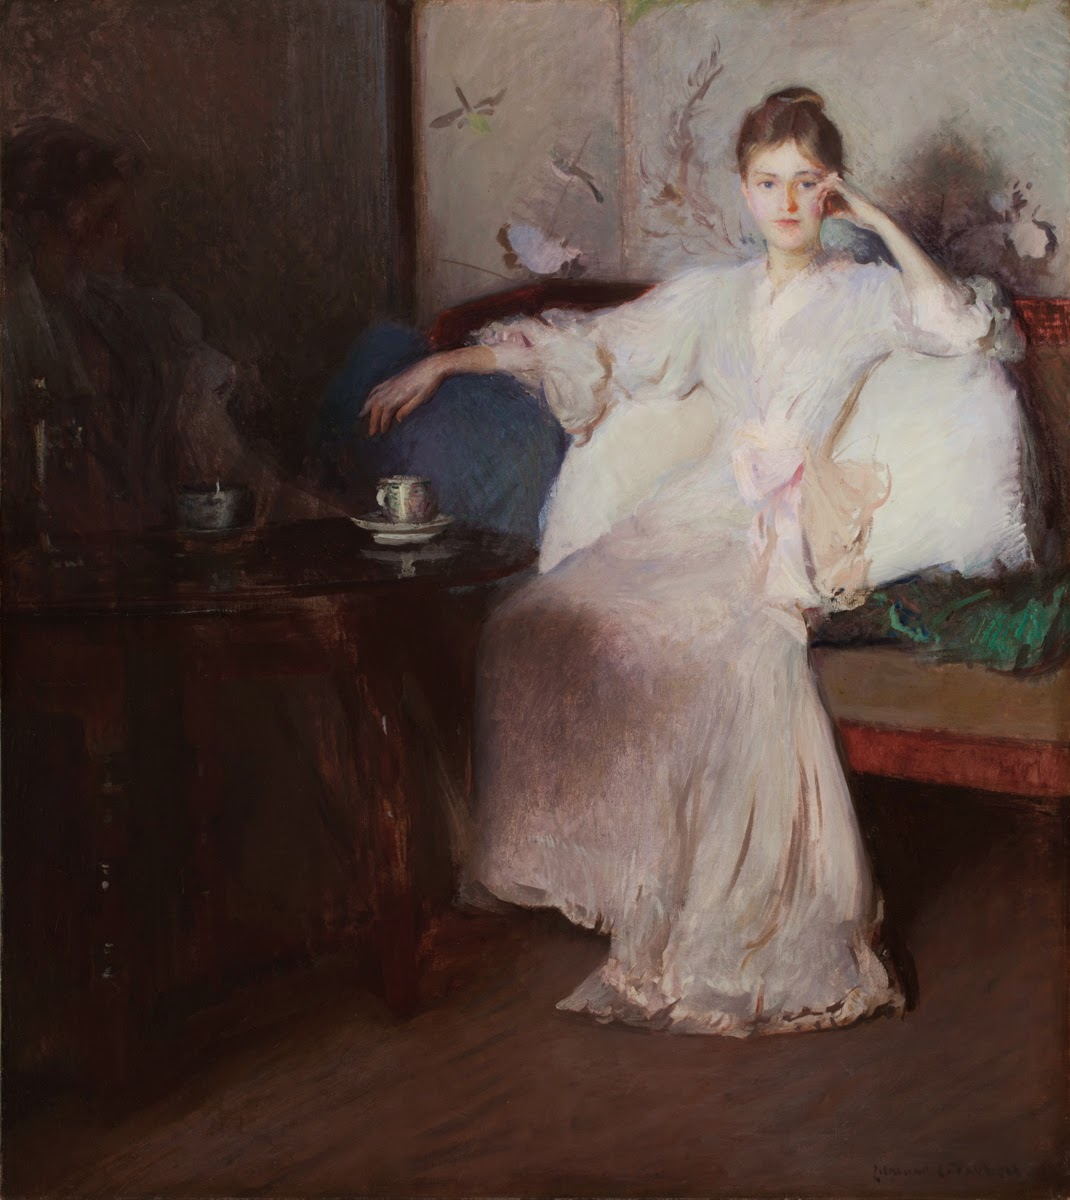 Arrangement in Pink and Gray (Afternoon Tea), 1894 Edmund Charles Tarbell (American, 1862–1938) Gift of Howard Freeman, in honor of Esther Freeman, 1995.73